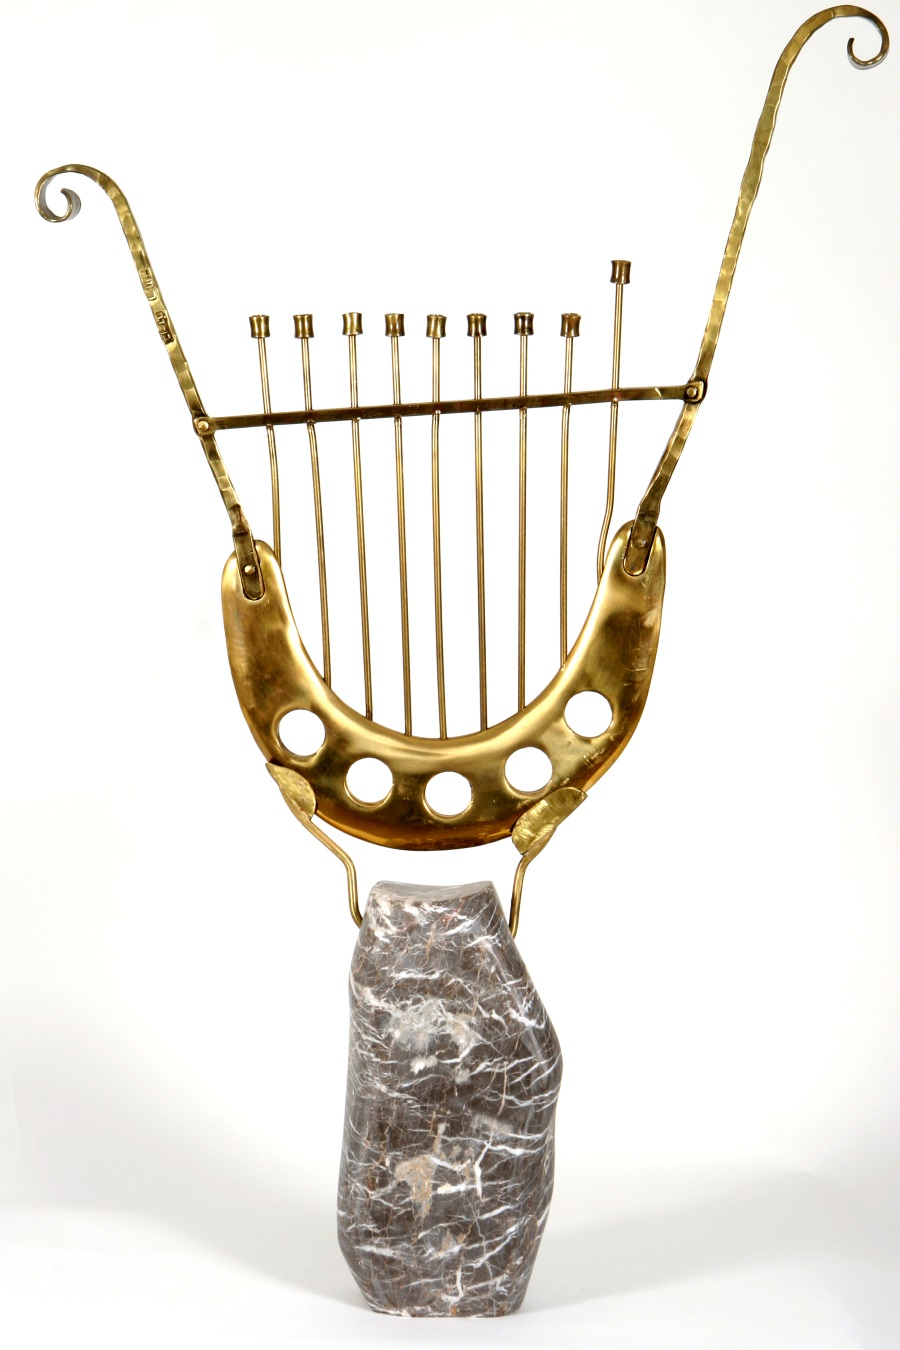 """David's Lyre Bronze"" – Artisitic lyre-shaped Hanucka menorah from Bronze & Marble"